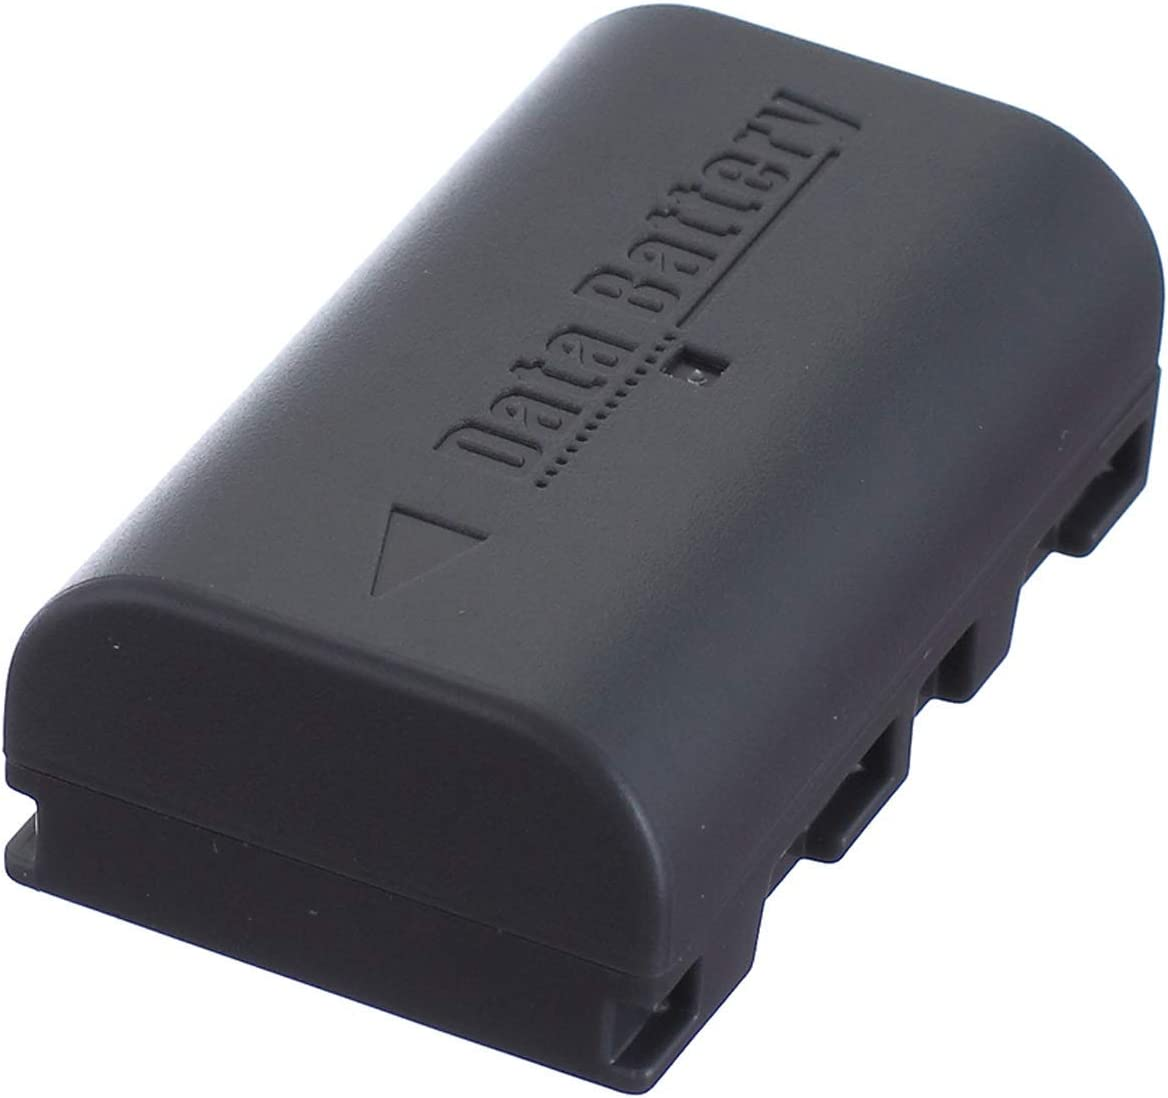 BN-VF823U Battery Pack for JVC Everio GZ-MG150 GZ-MG175 GZ-MG155 GZ-MG275 GZ-MG255 GZ-MG465 GZ-MG365 GZ-MG335 GZ-MG555 GZ-MG575 Camcorder GZ-MG435